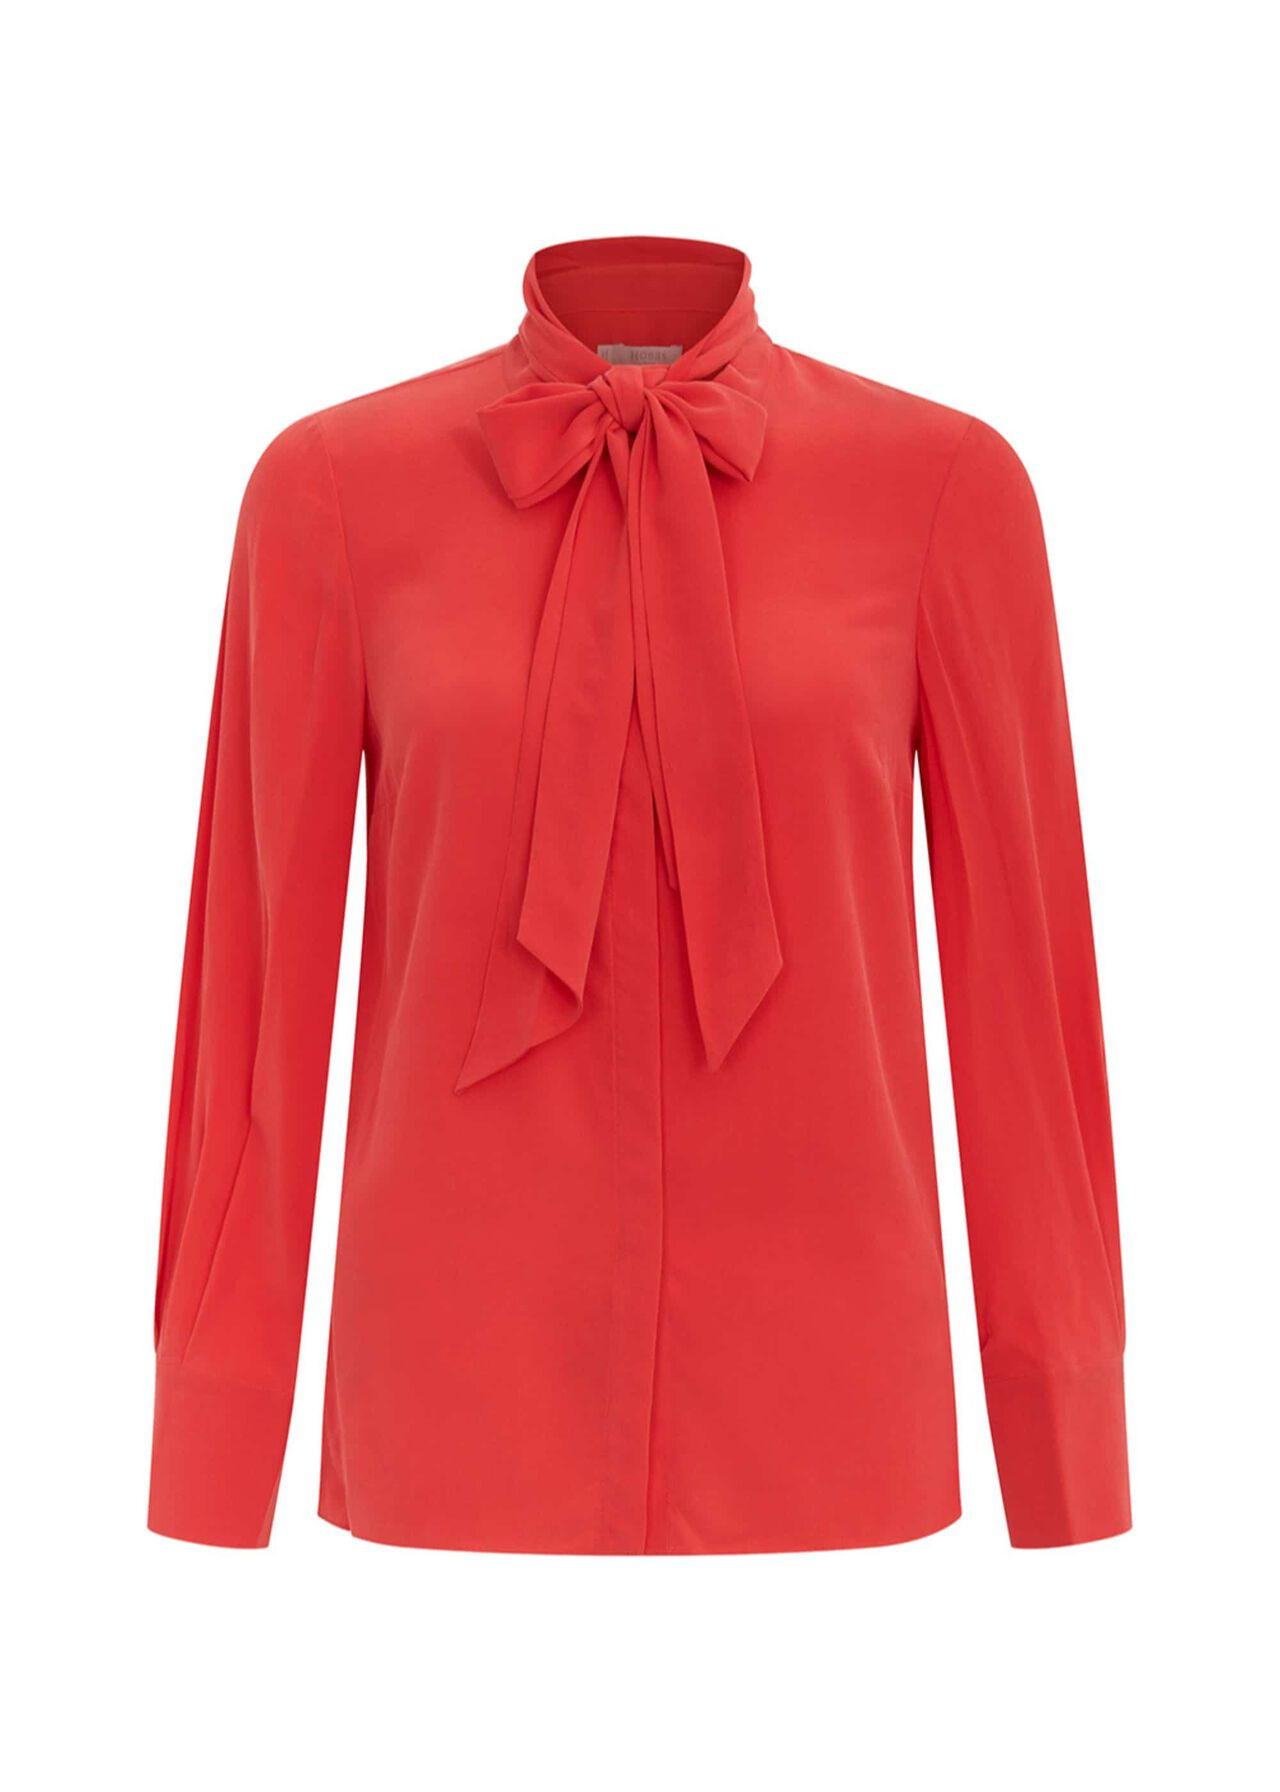 Beatrice Silk Top Red